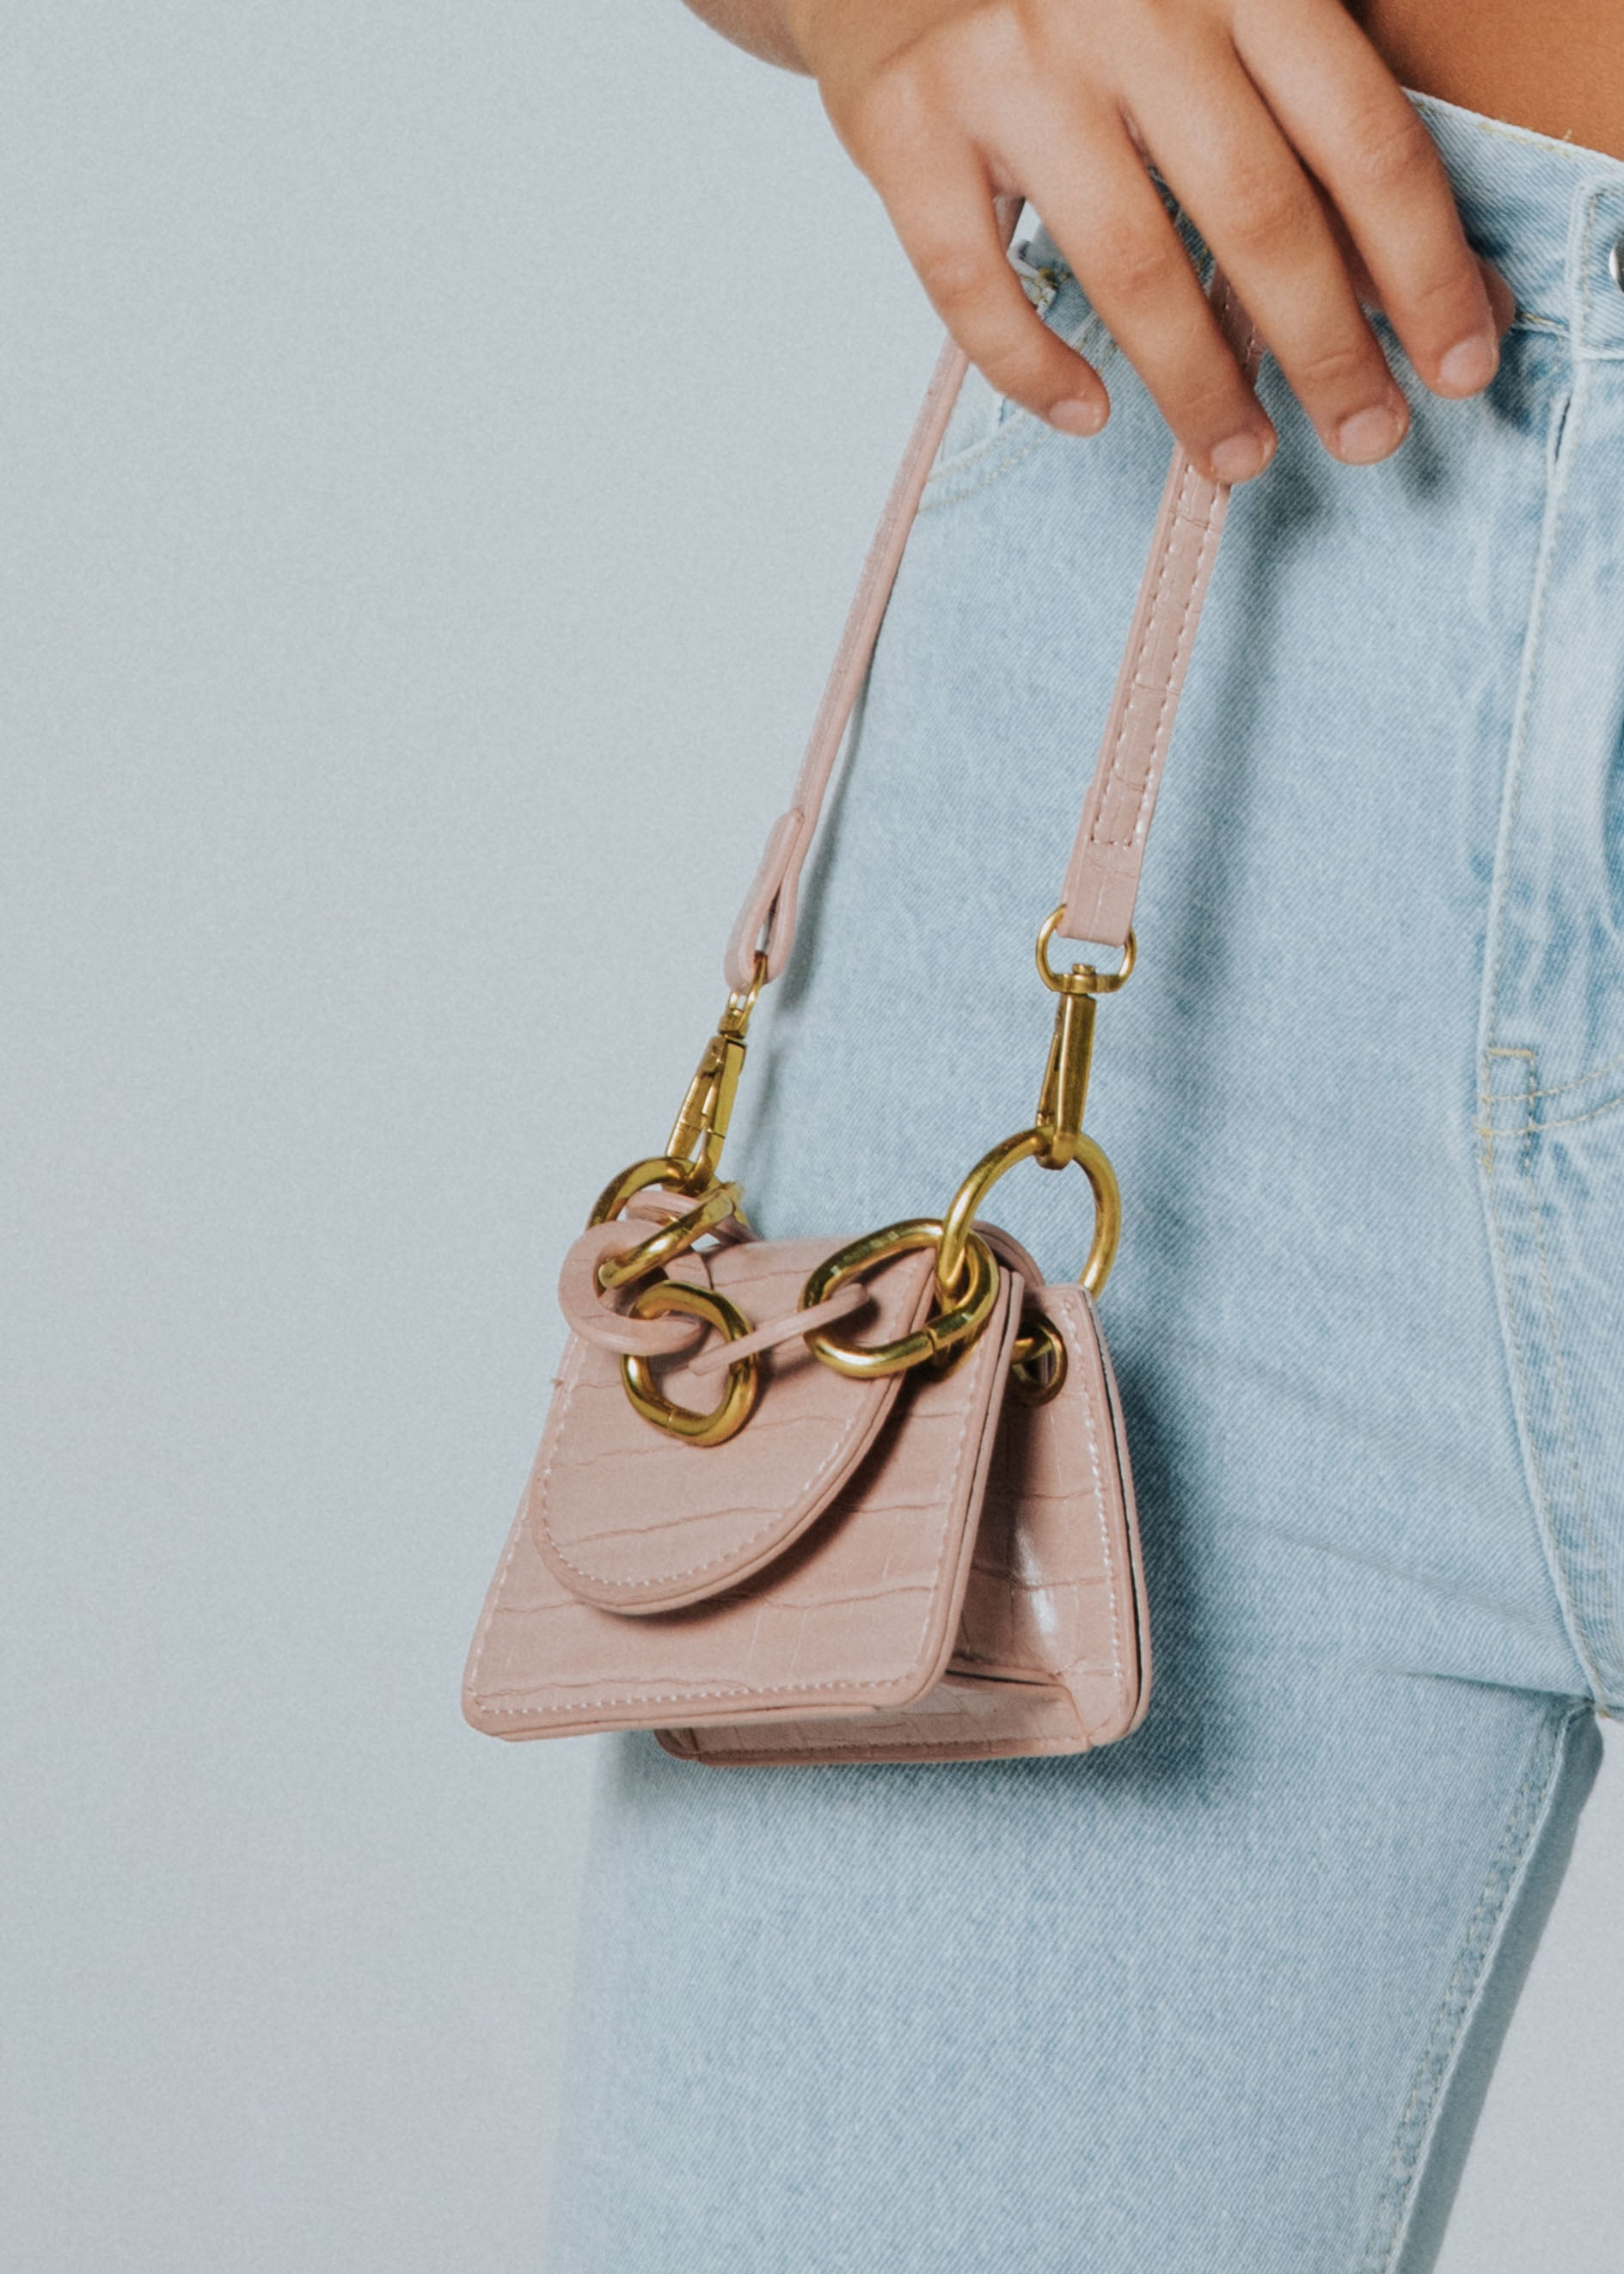 Coco Mini Bag - Blush